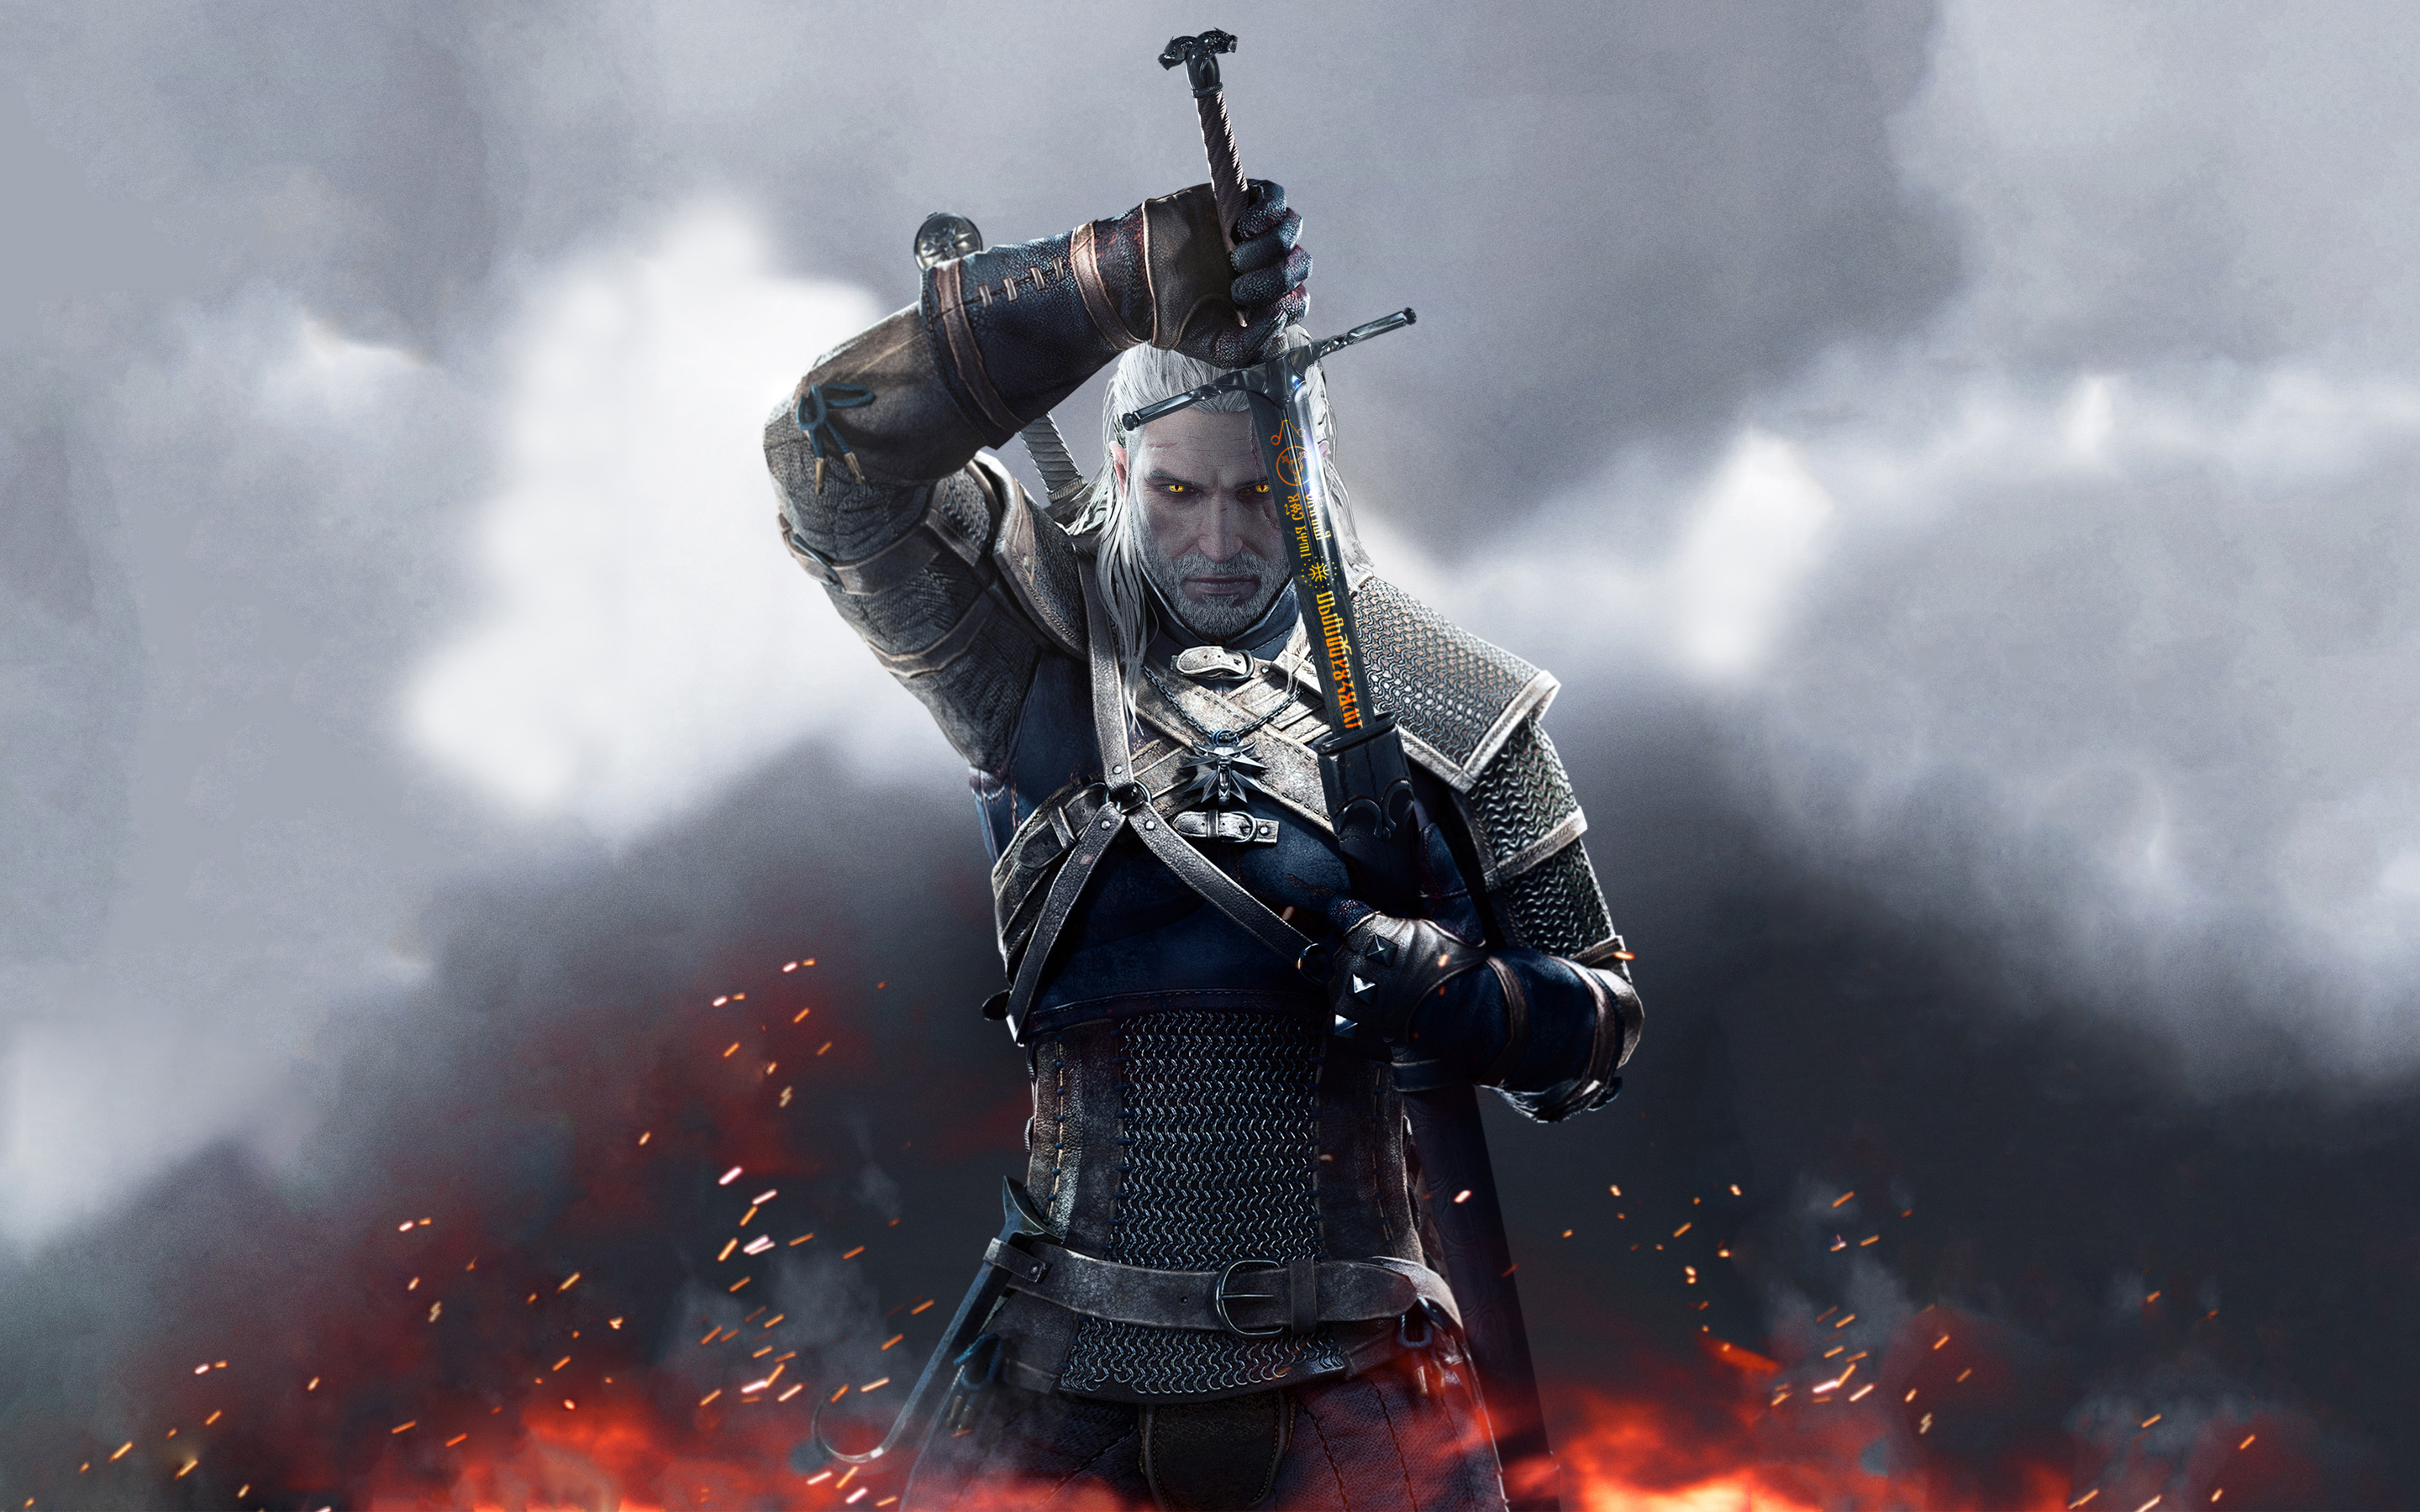 HD Wallpapers The Witcher 3 Wild Hunt Sword of Destiny